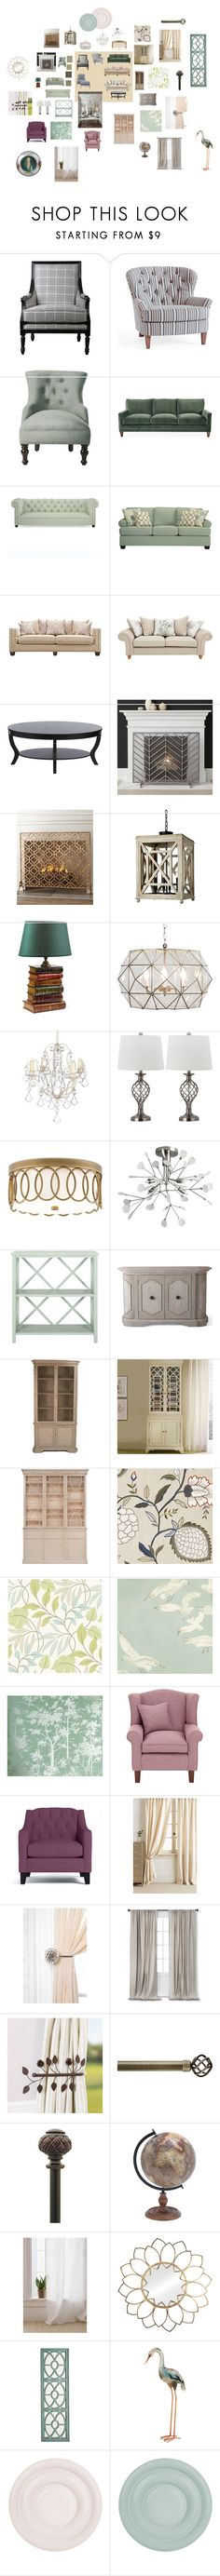 """""""living room"""" by explorer-14842989045 on Polyvore featuring interior, interiors, interior design, дом, home decor, interior decorating, Home Decorators Collection, Williams-Sonoma, I Love Living и Crate and Barrel"""